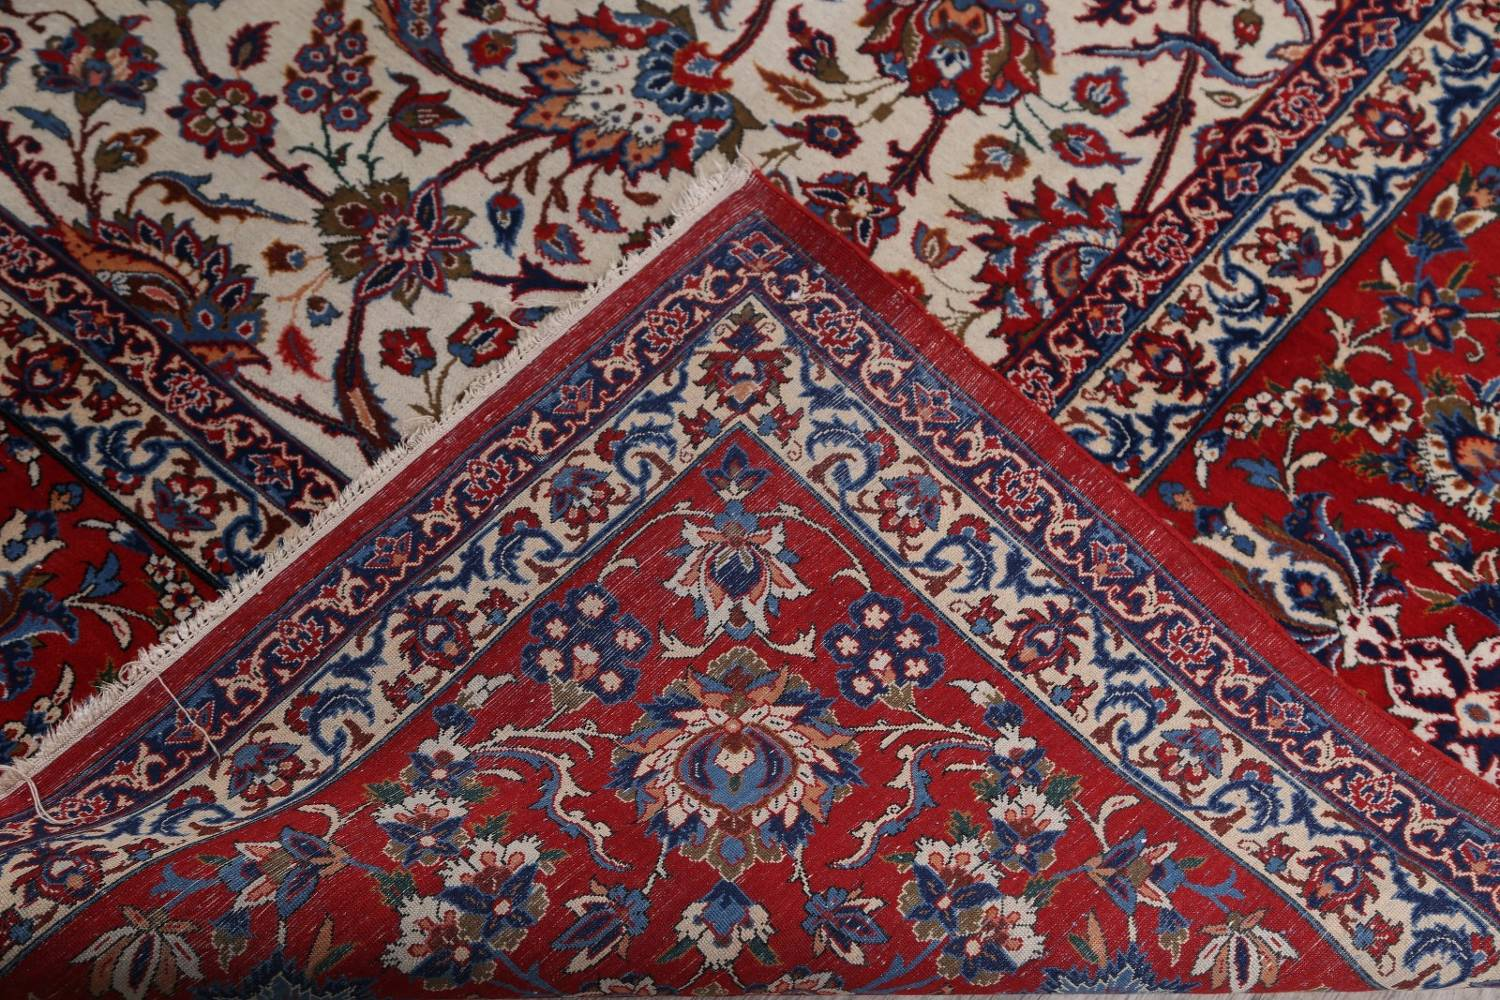 Antique Floral 10x16 Isfahan Persian Area Rug image 28